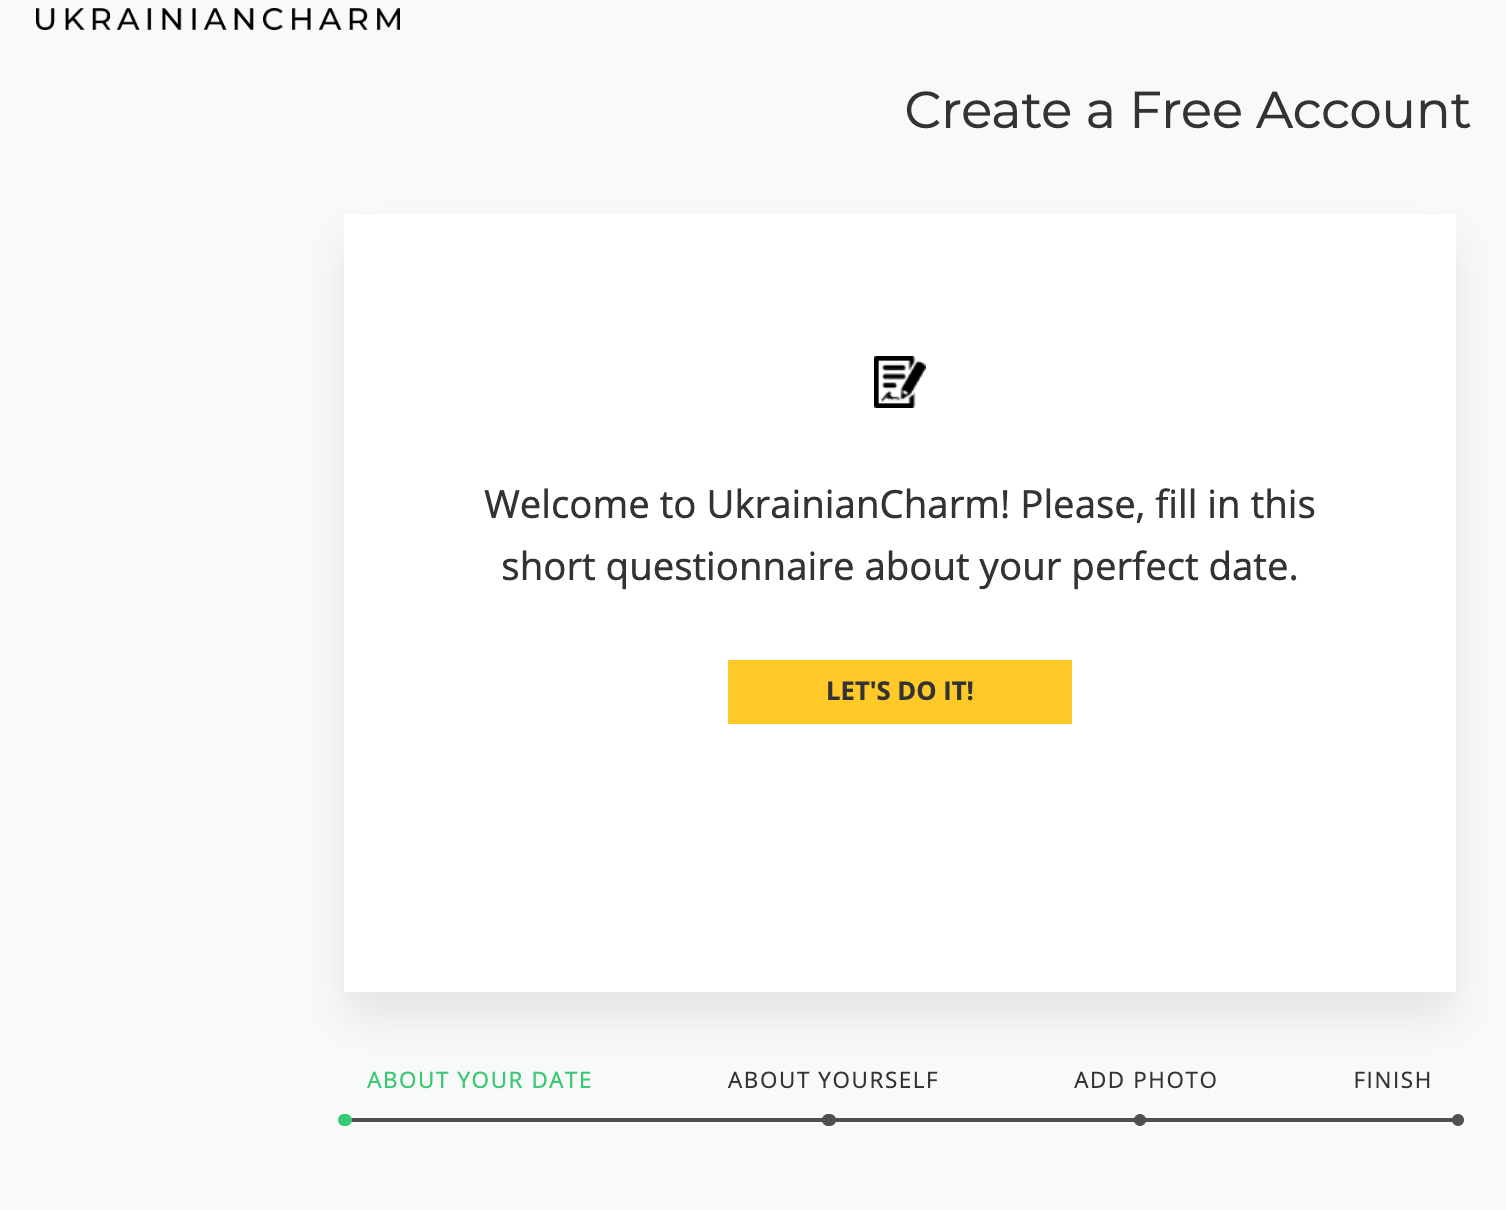 UkrainianCharm Review